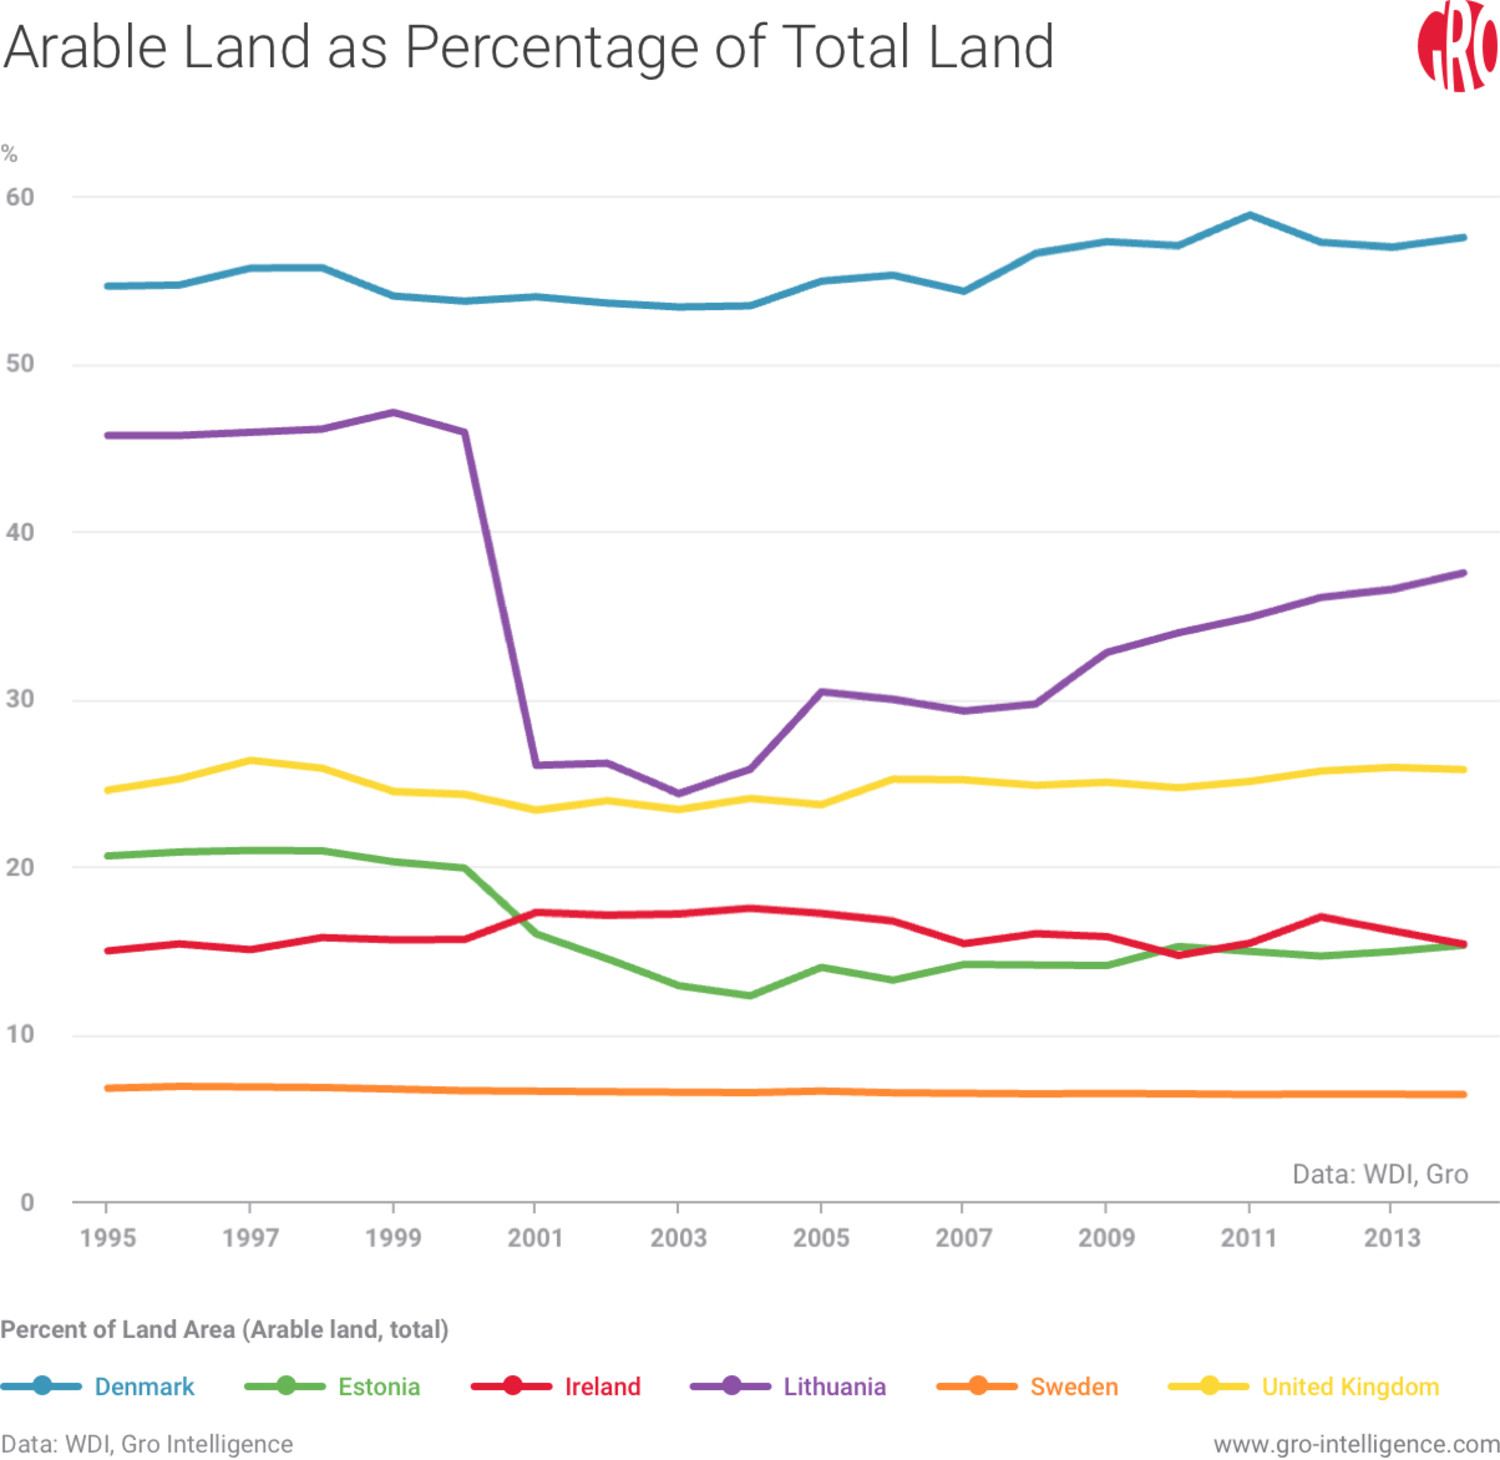 Arable Land as Percentage of Total Land